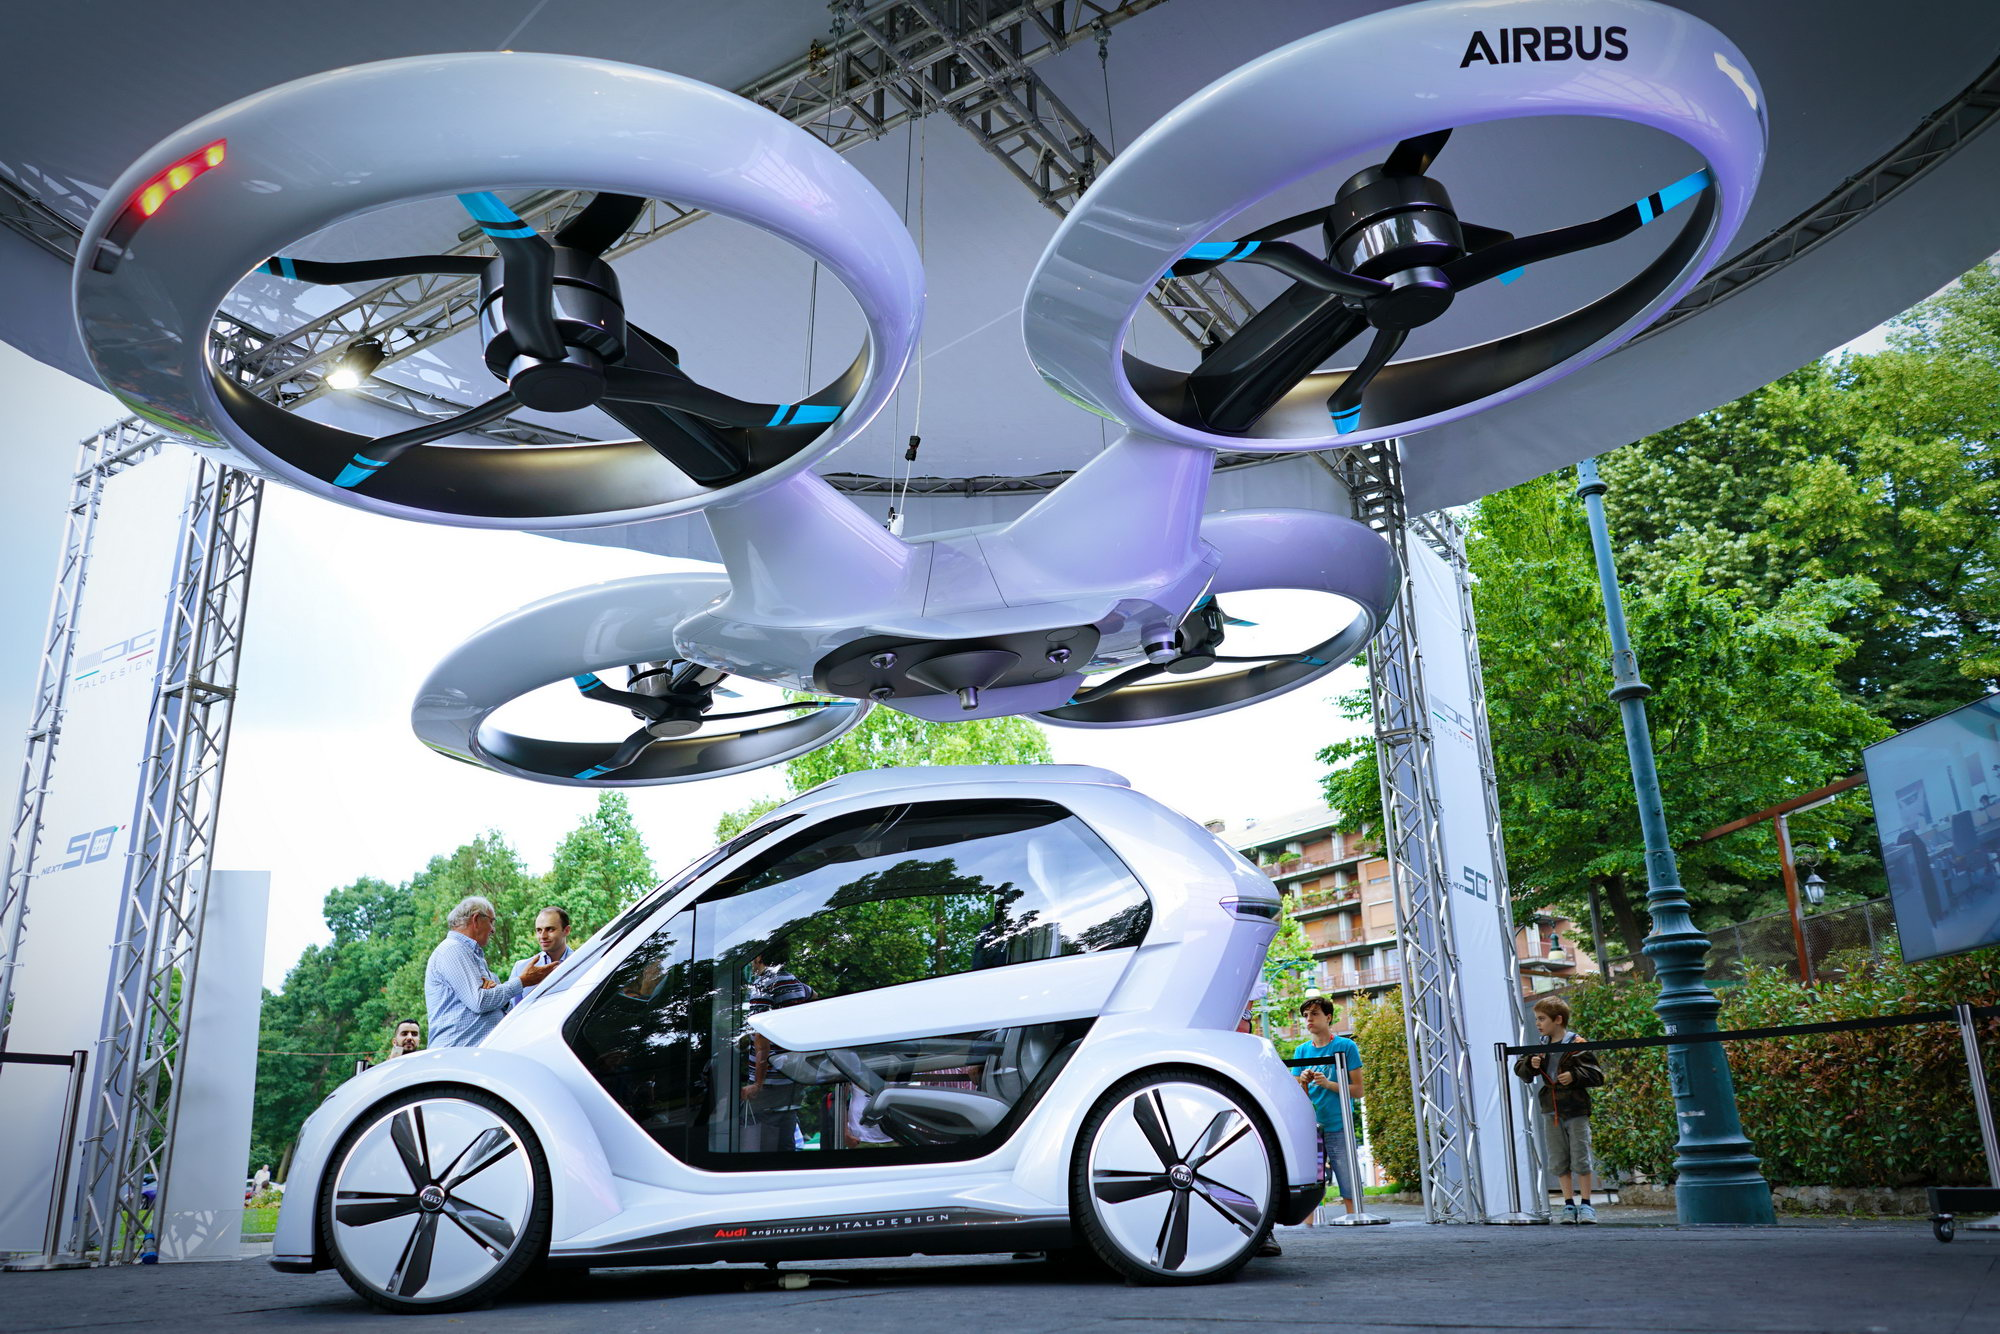 Airbus drone 002